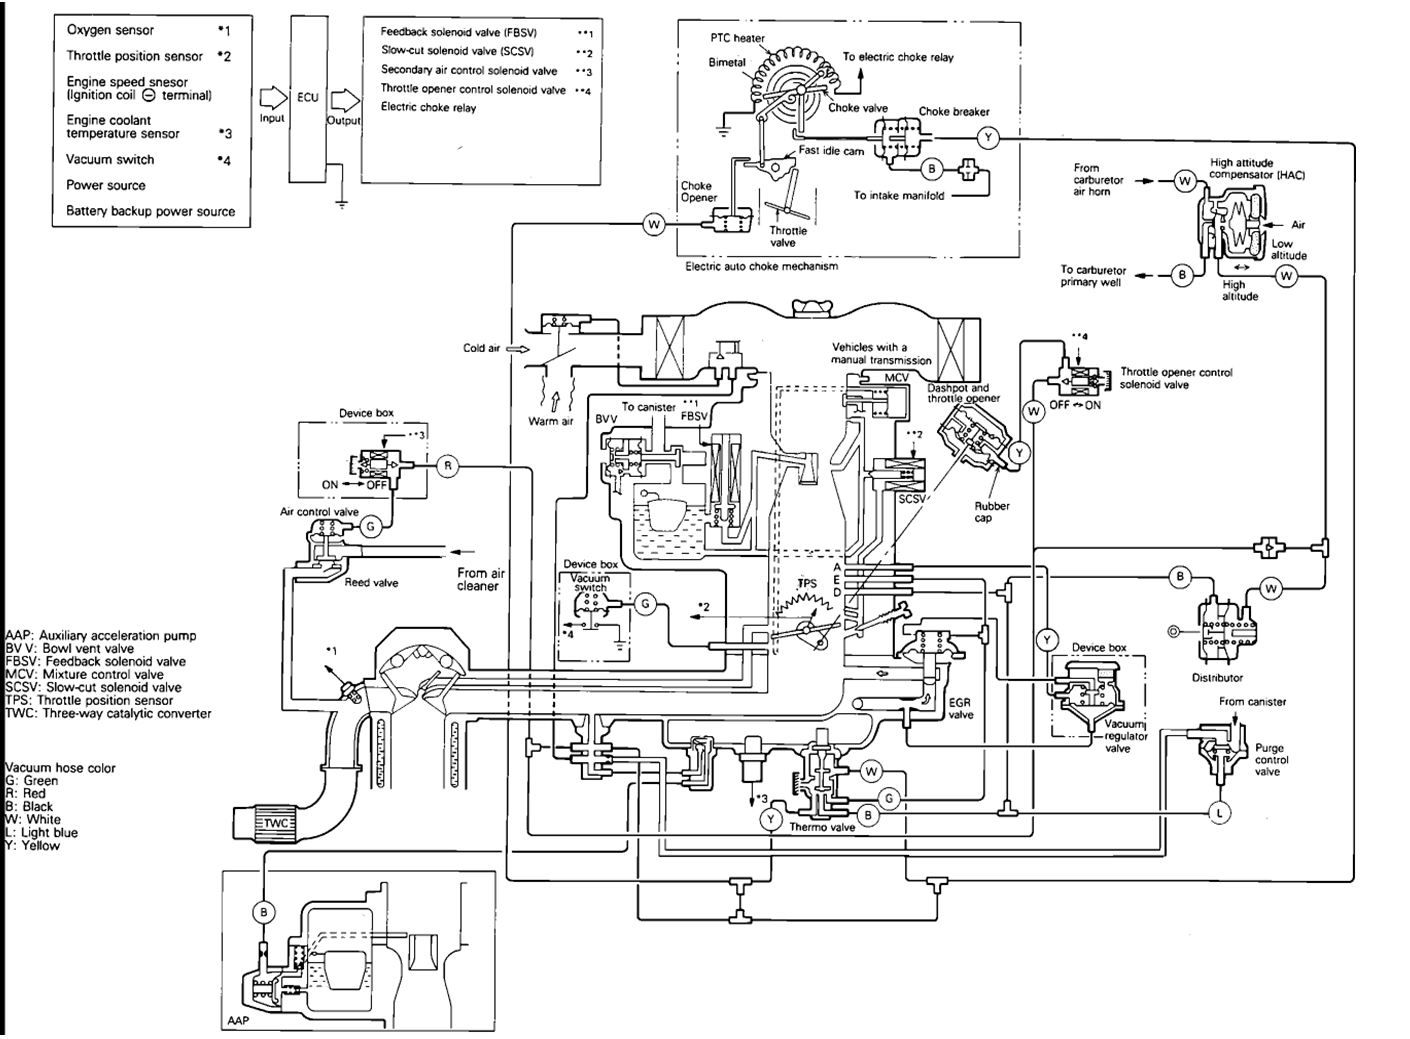 1994 mitsubishi mighty max fuel wiring diagram 1994